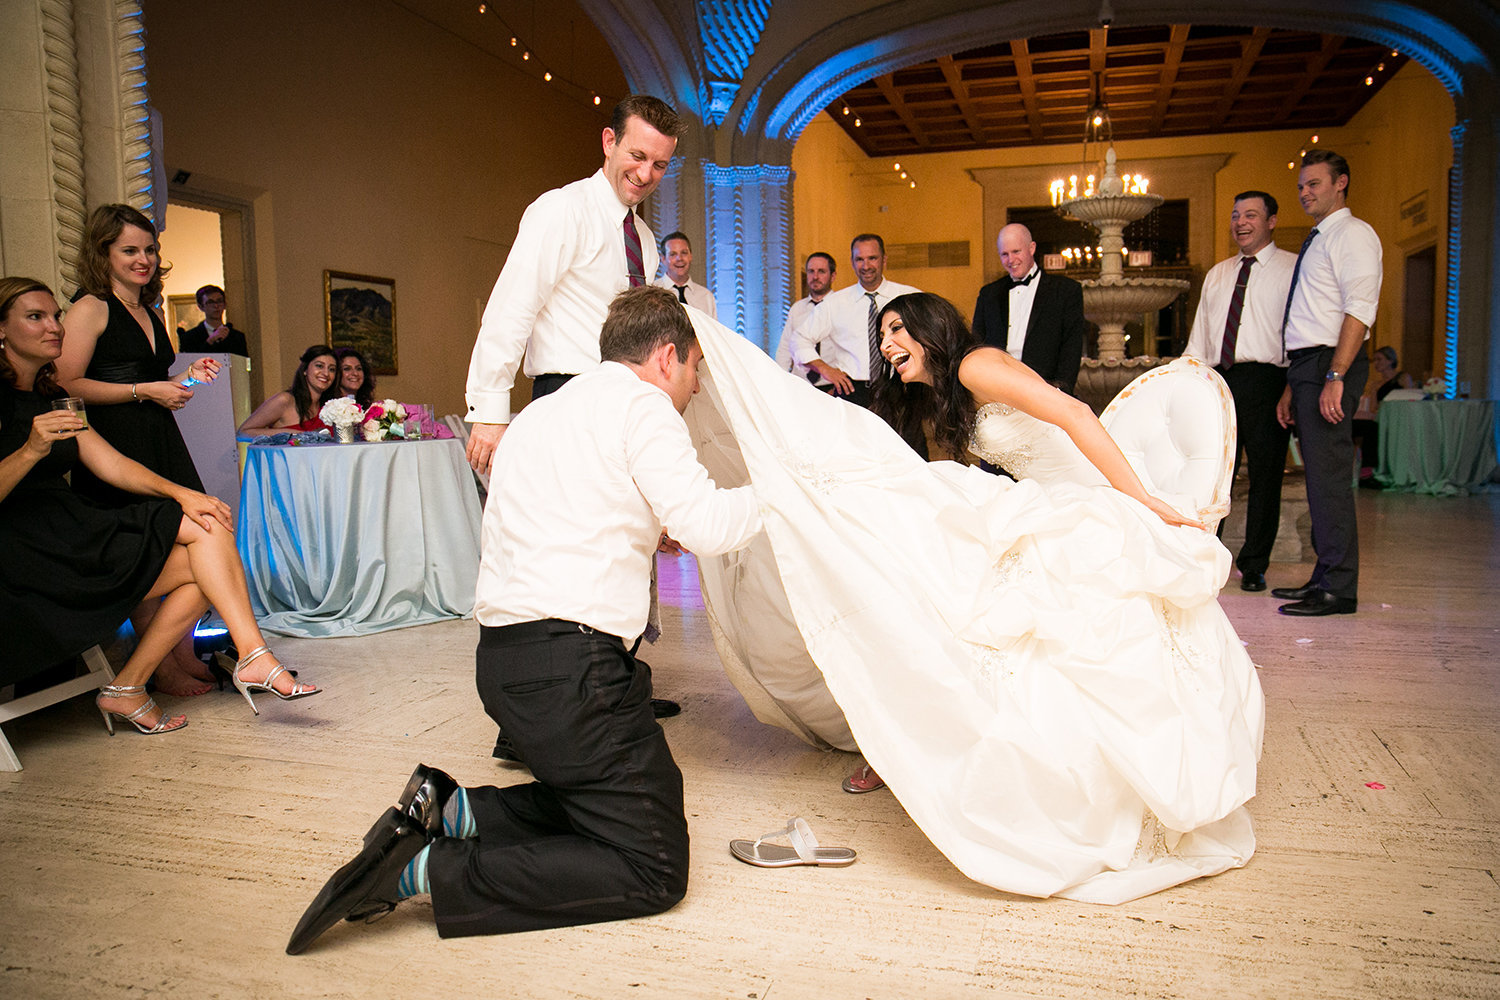 Hilarious moment during the garter removal